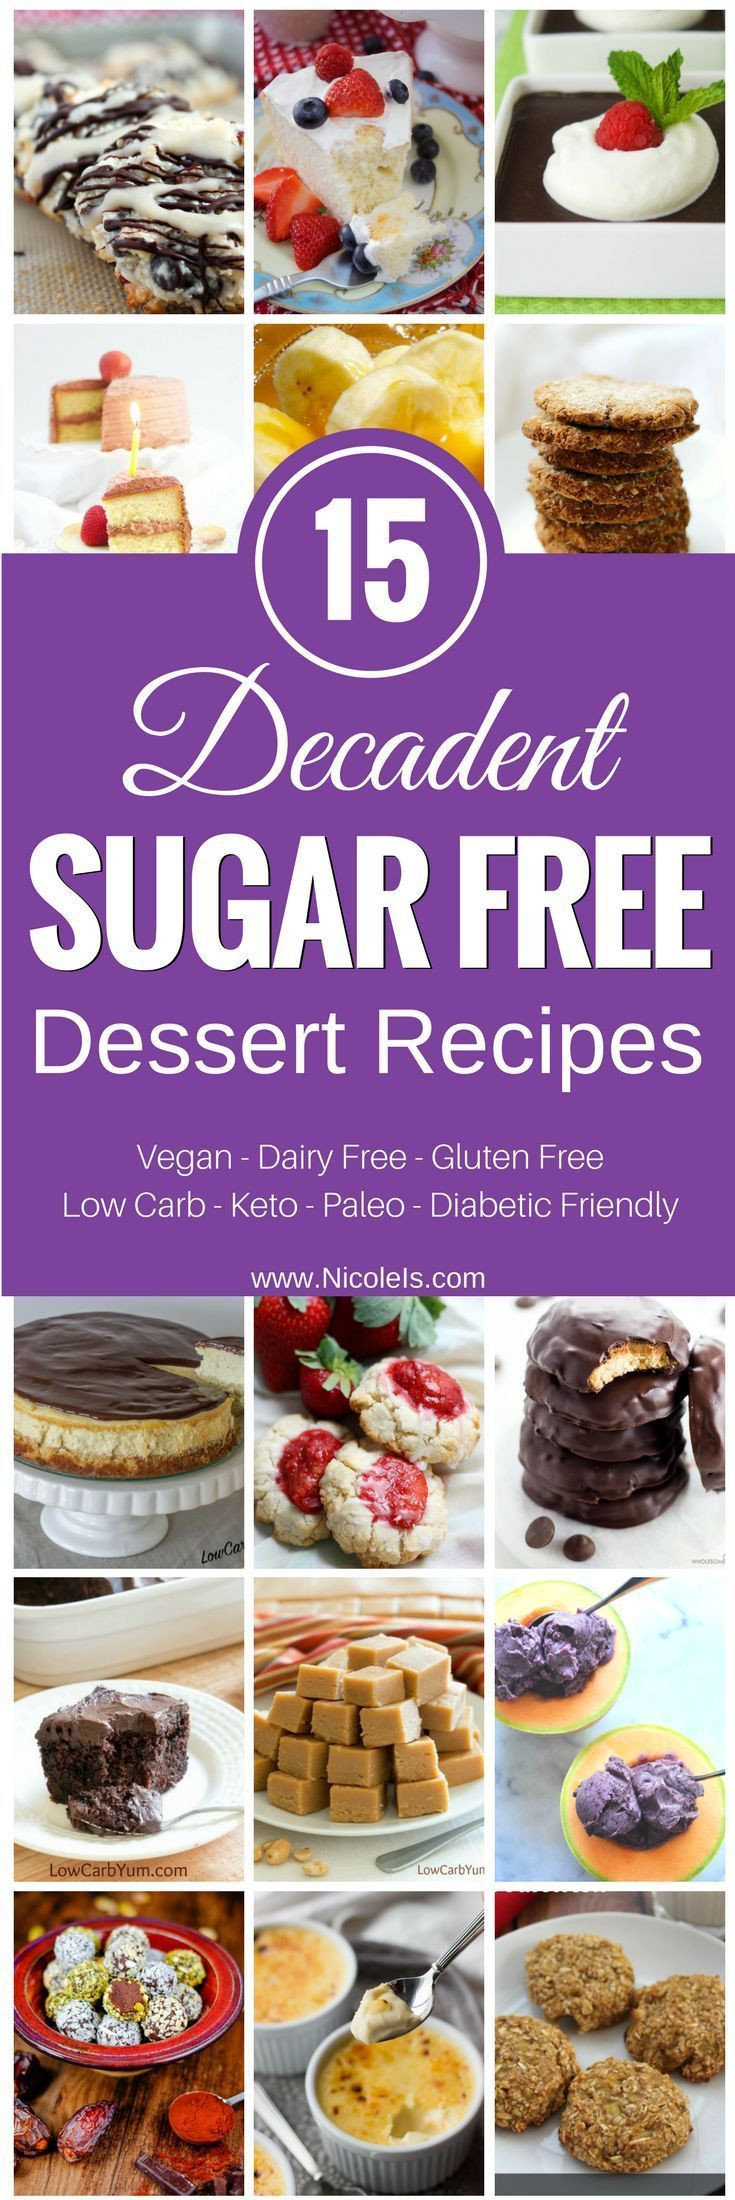 Dessert Recipes For Diabetics Sugar Free  Best 25 Sugar free diabetic recipes ideas on Pinterest